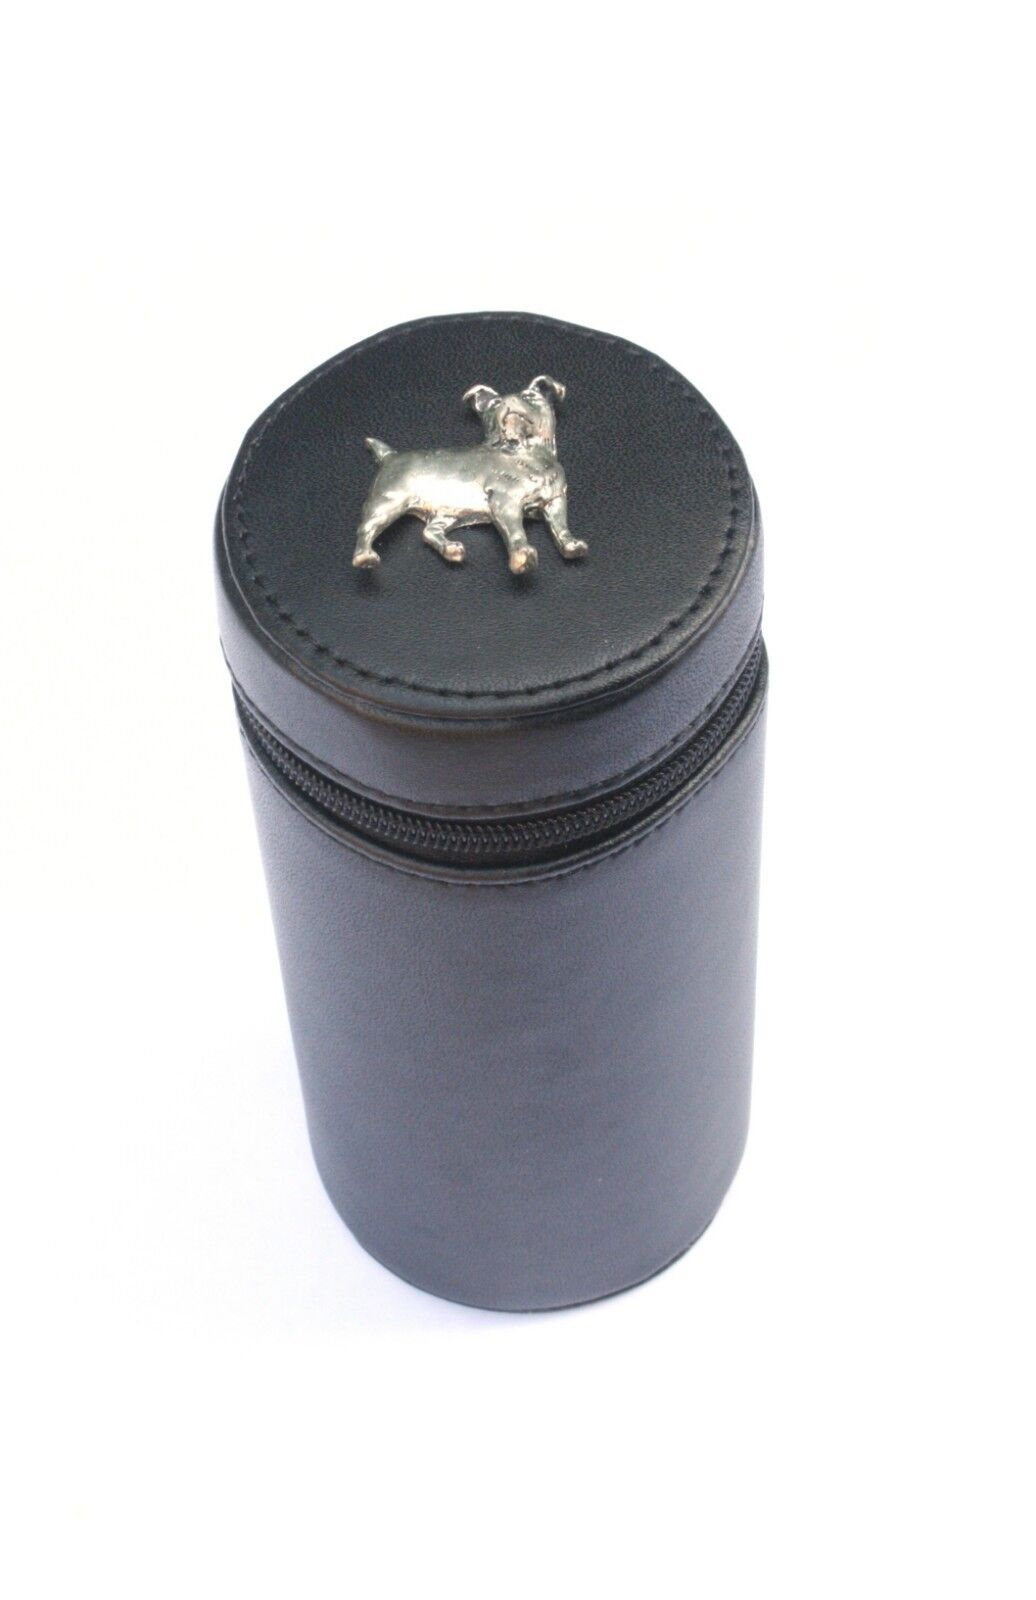 Jack Russell Shooting Peg Position Finder Numberojo Cups 1-10 negro Leather Case